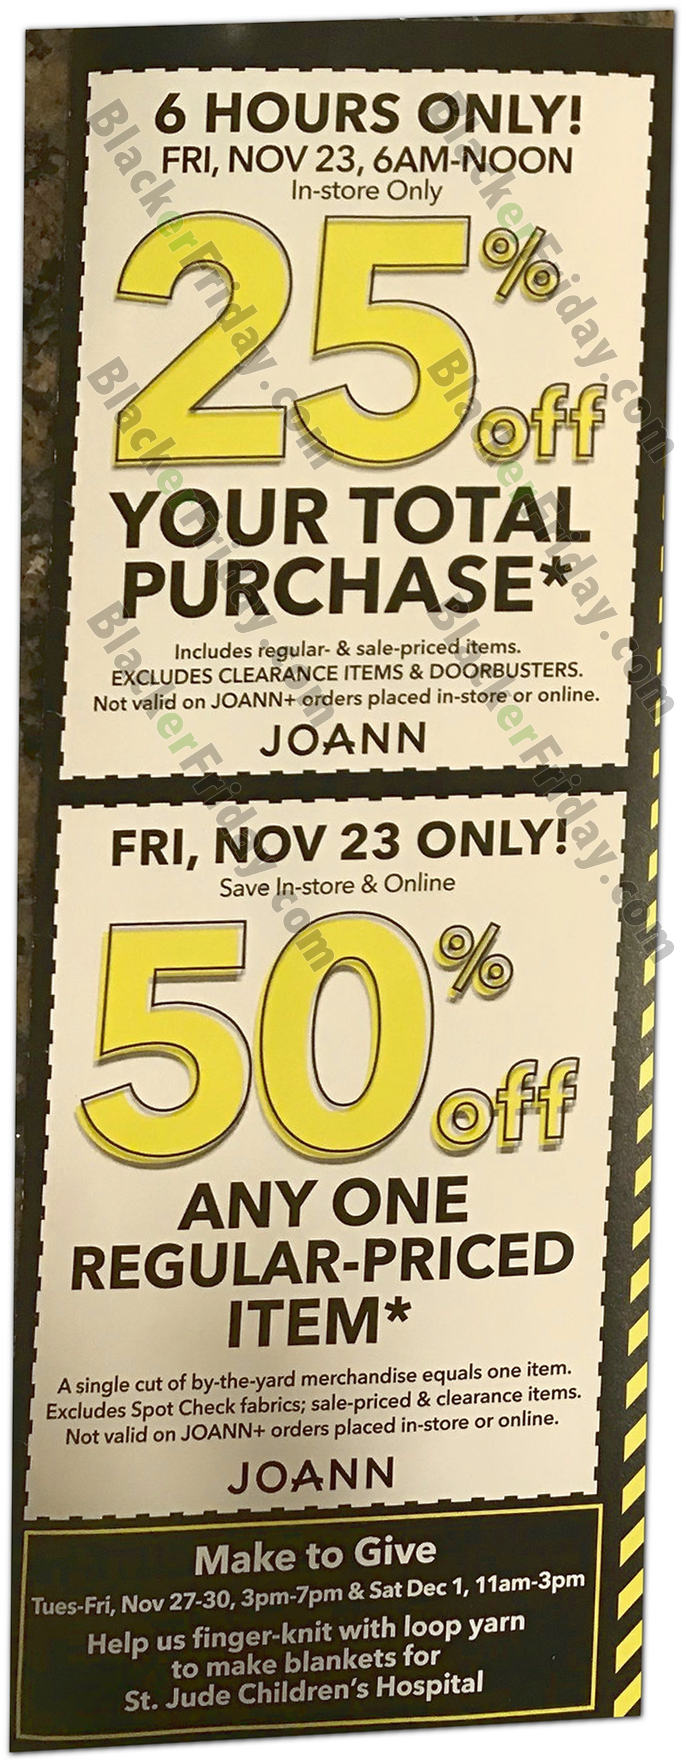 Jo-Ann Fabric's Black Friday 2019 Ad & Sale Details